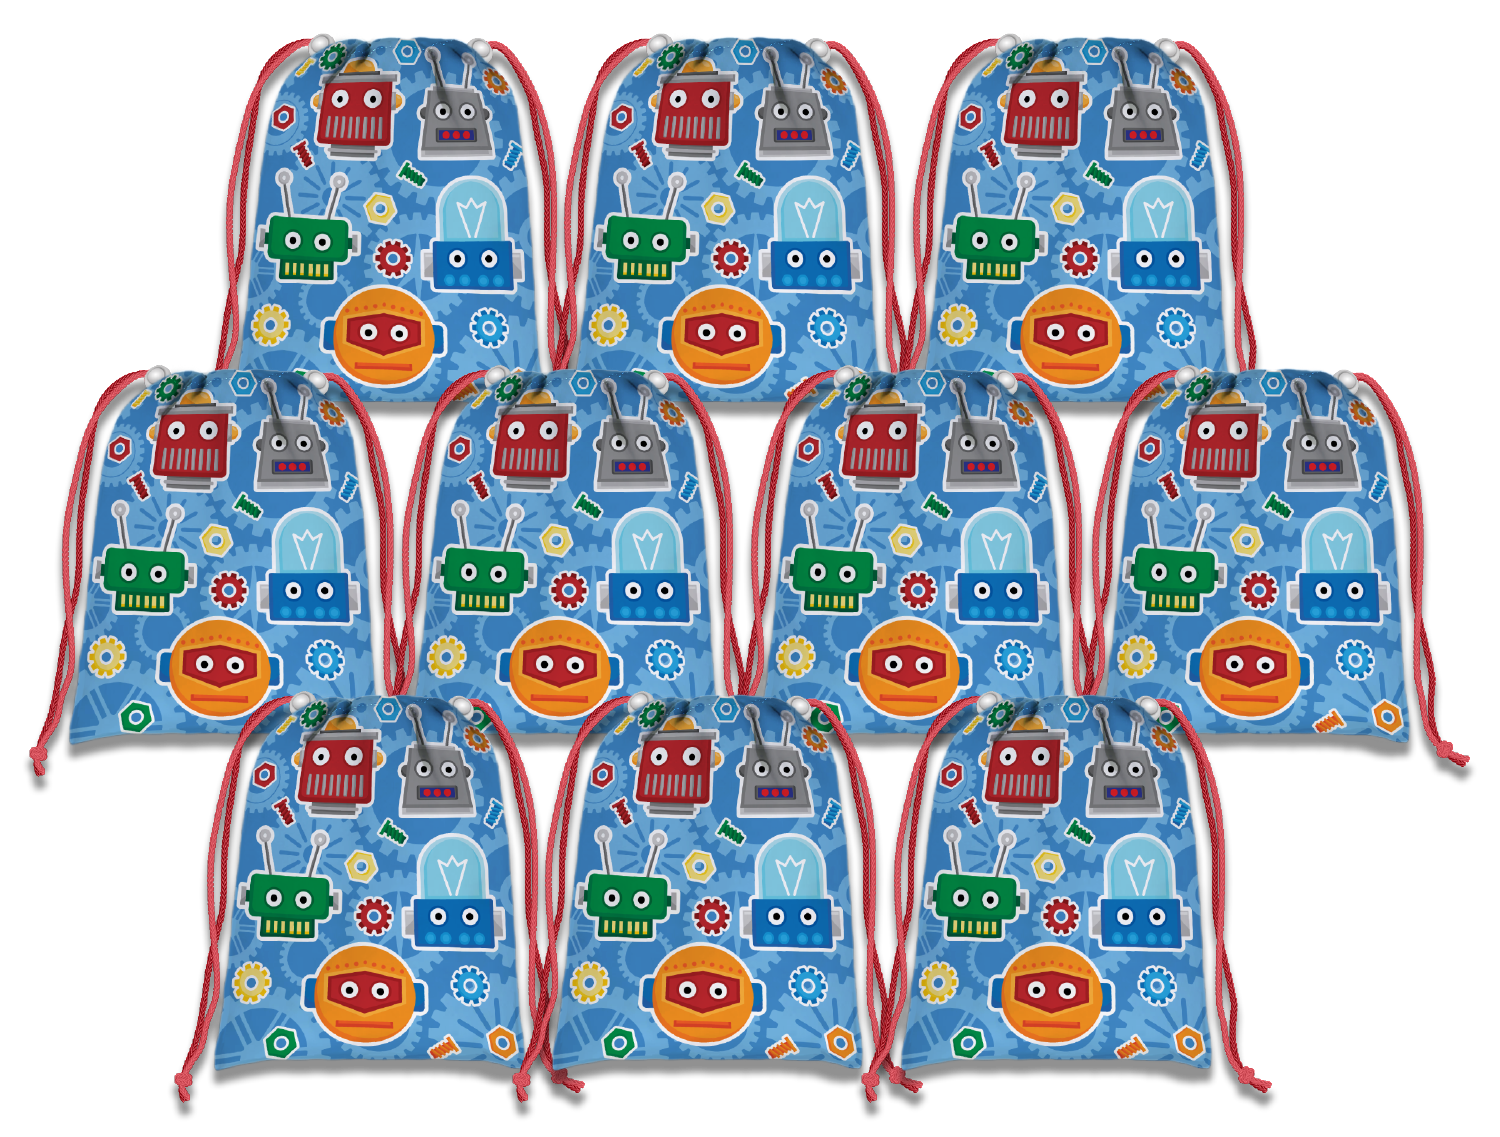 Robot Drawstring Tote Bag (10 Pack) - BirthdayGalore.com